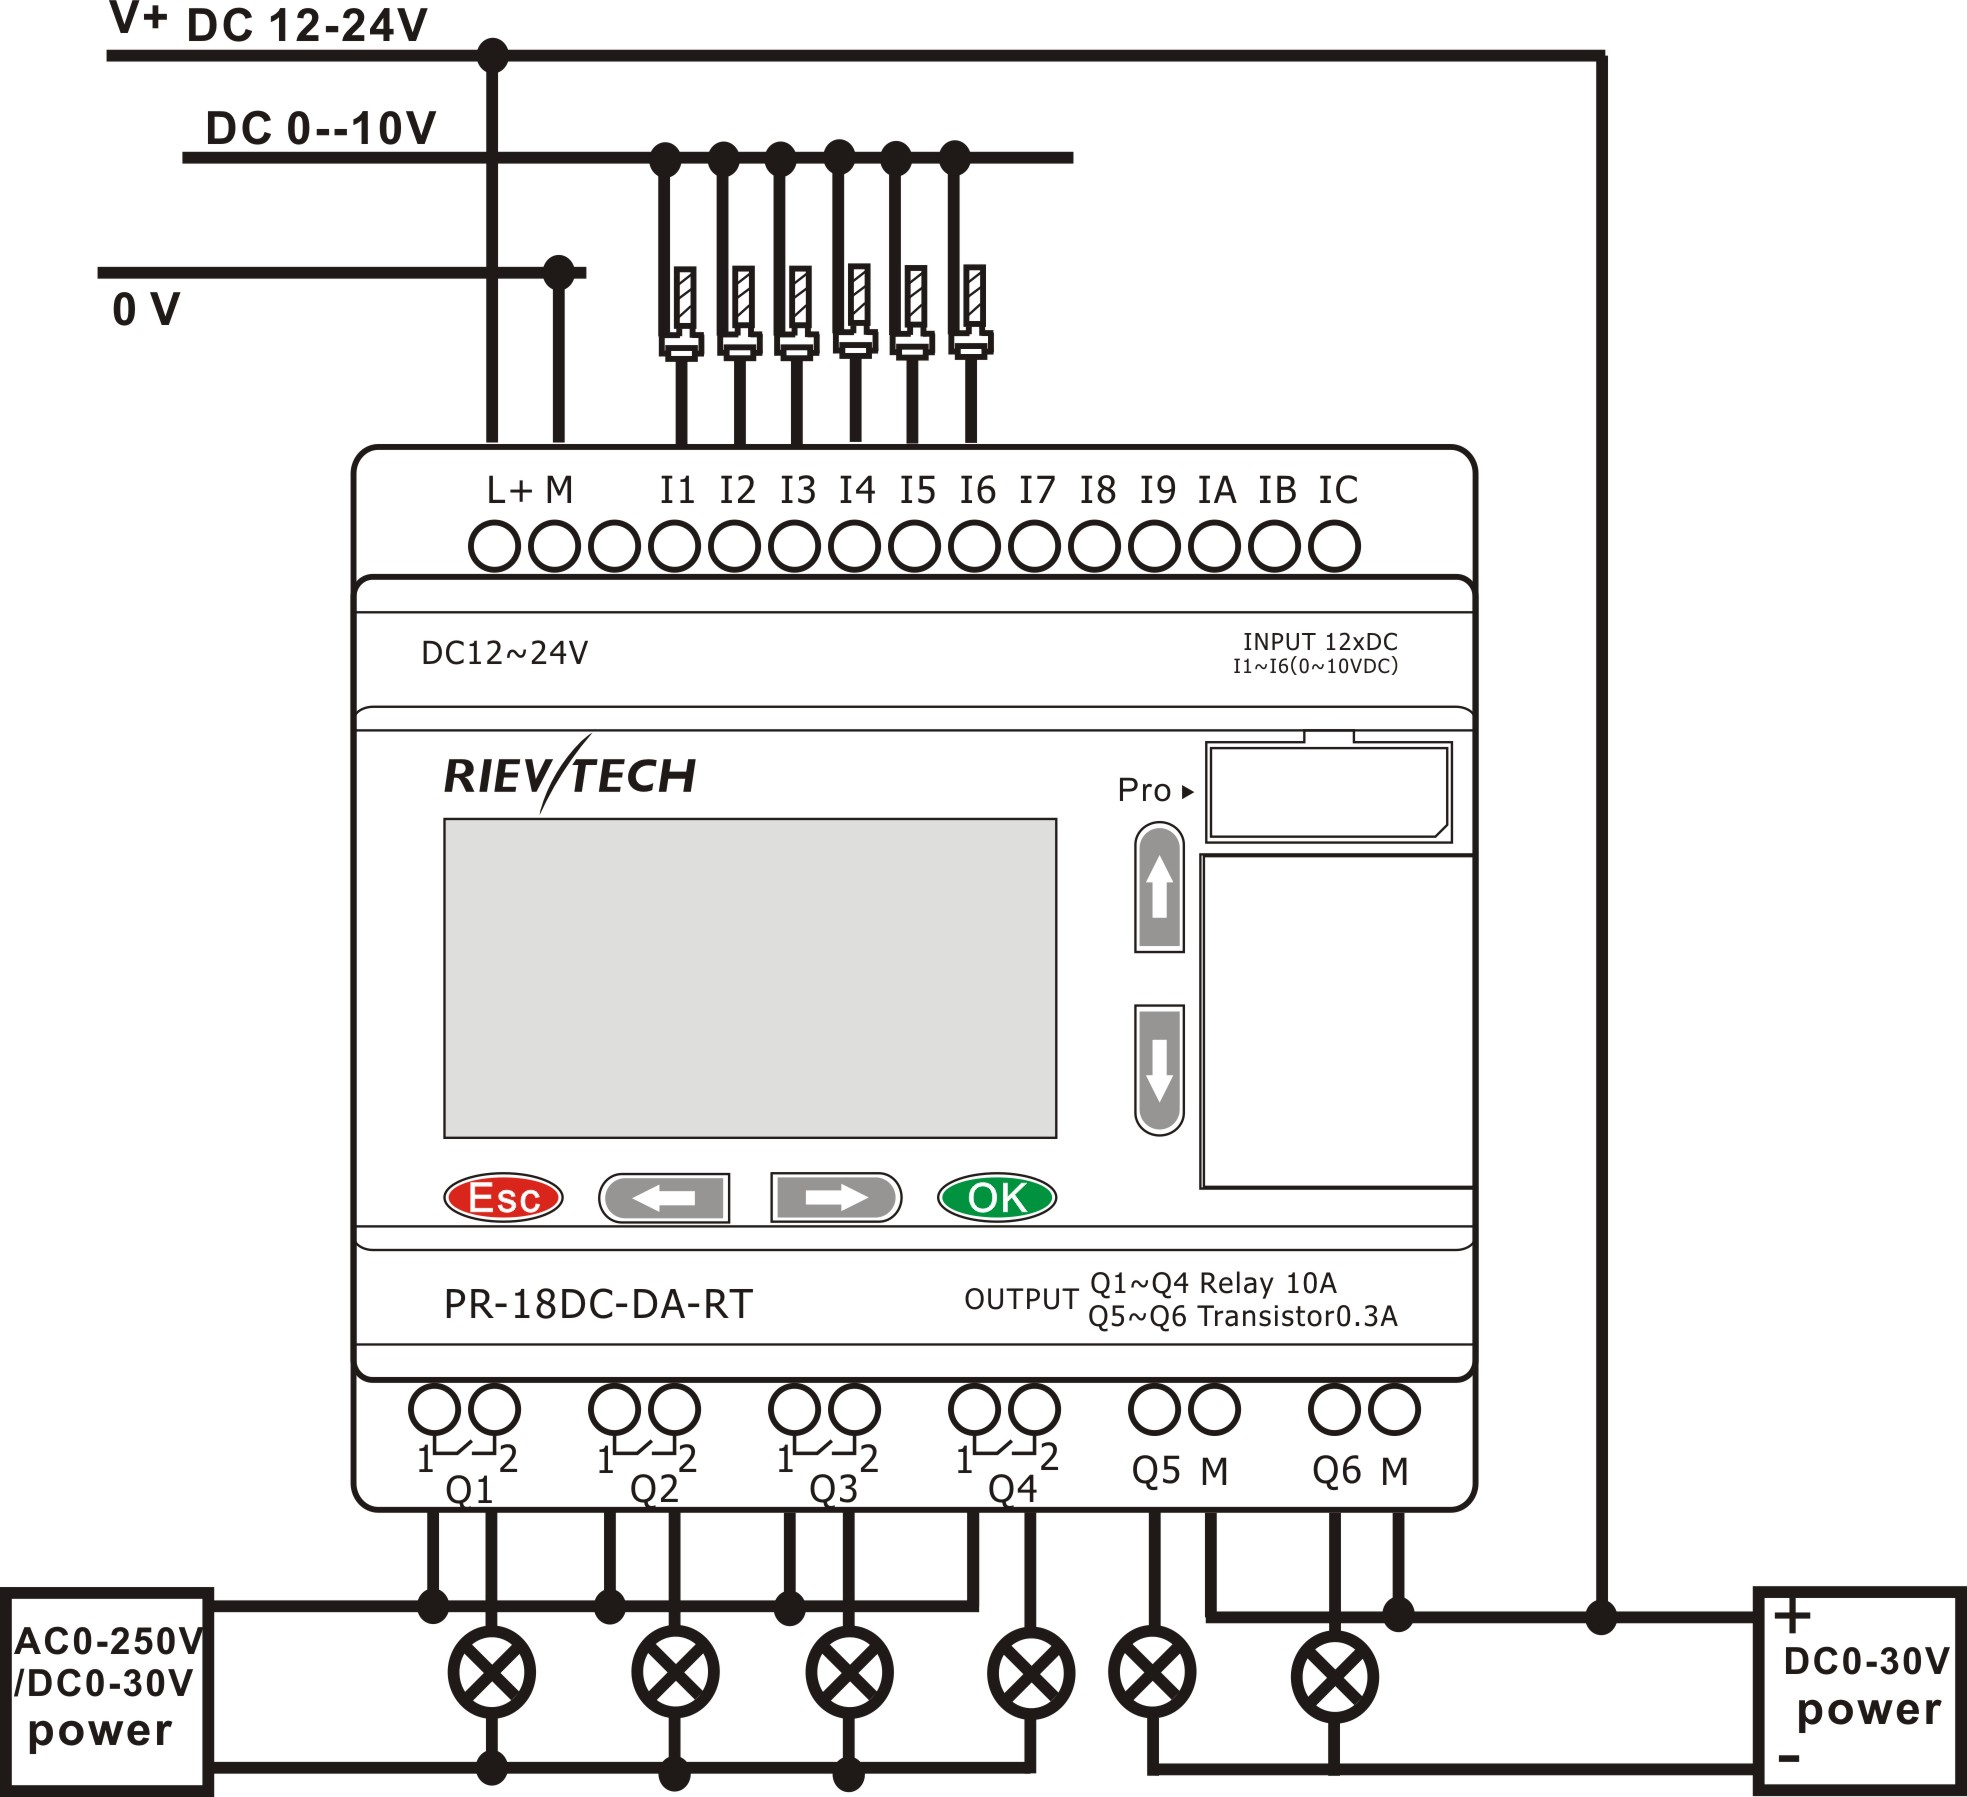 Modbus Serial Communication Wire Diagram Guide And Troubleshooting Wiring Siemens Rs485 Power Motorola Bluetooth Cat5